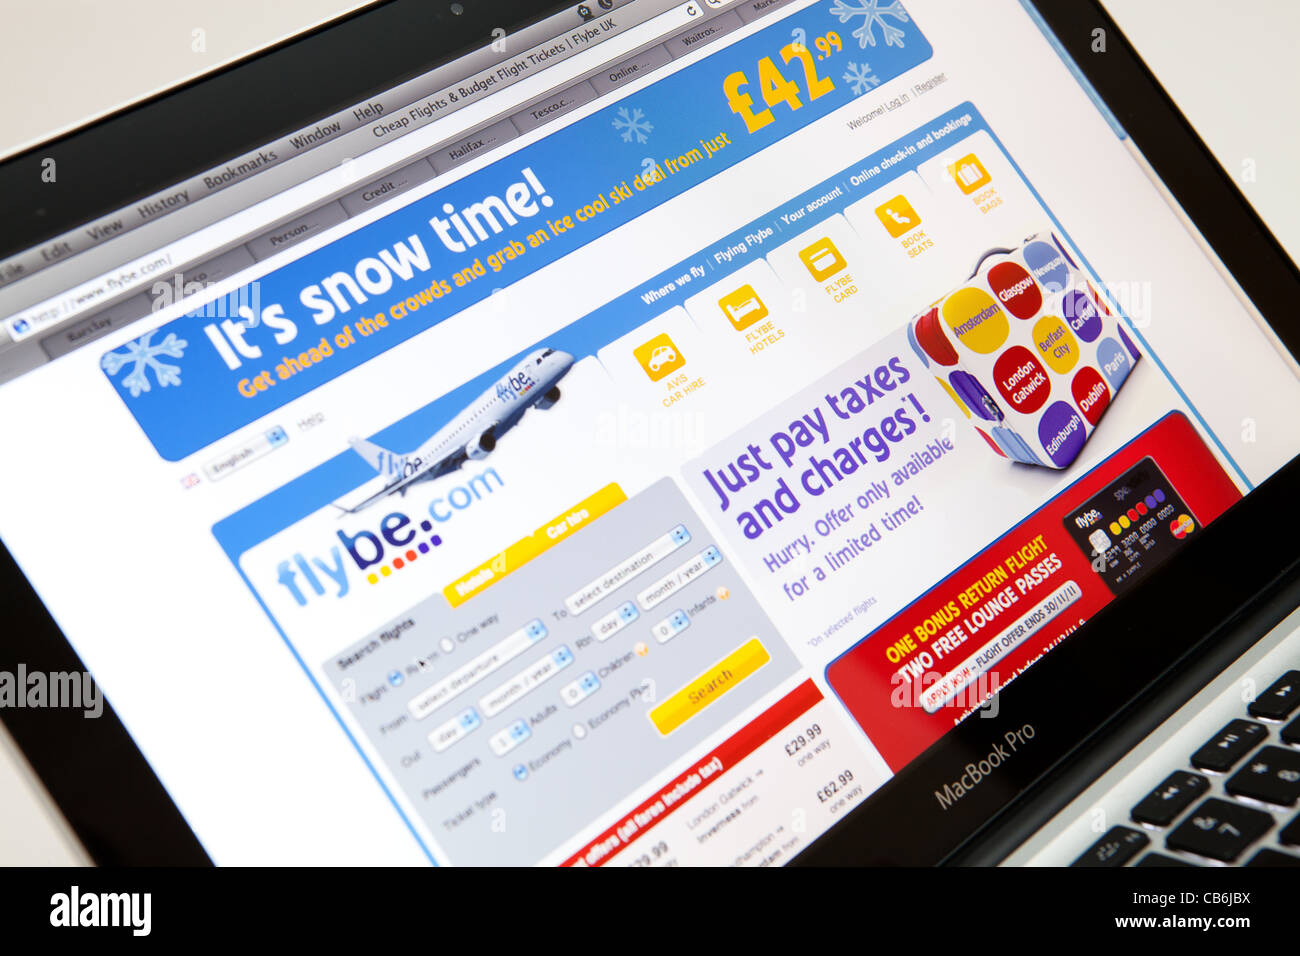 FLYBE Website Screen shot of web page - Stock Image